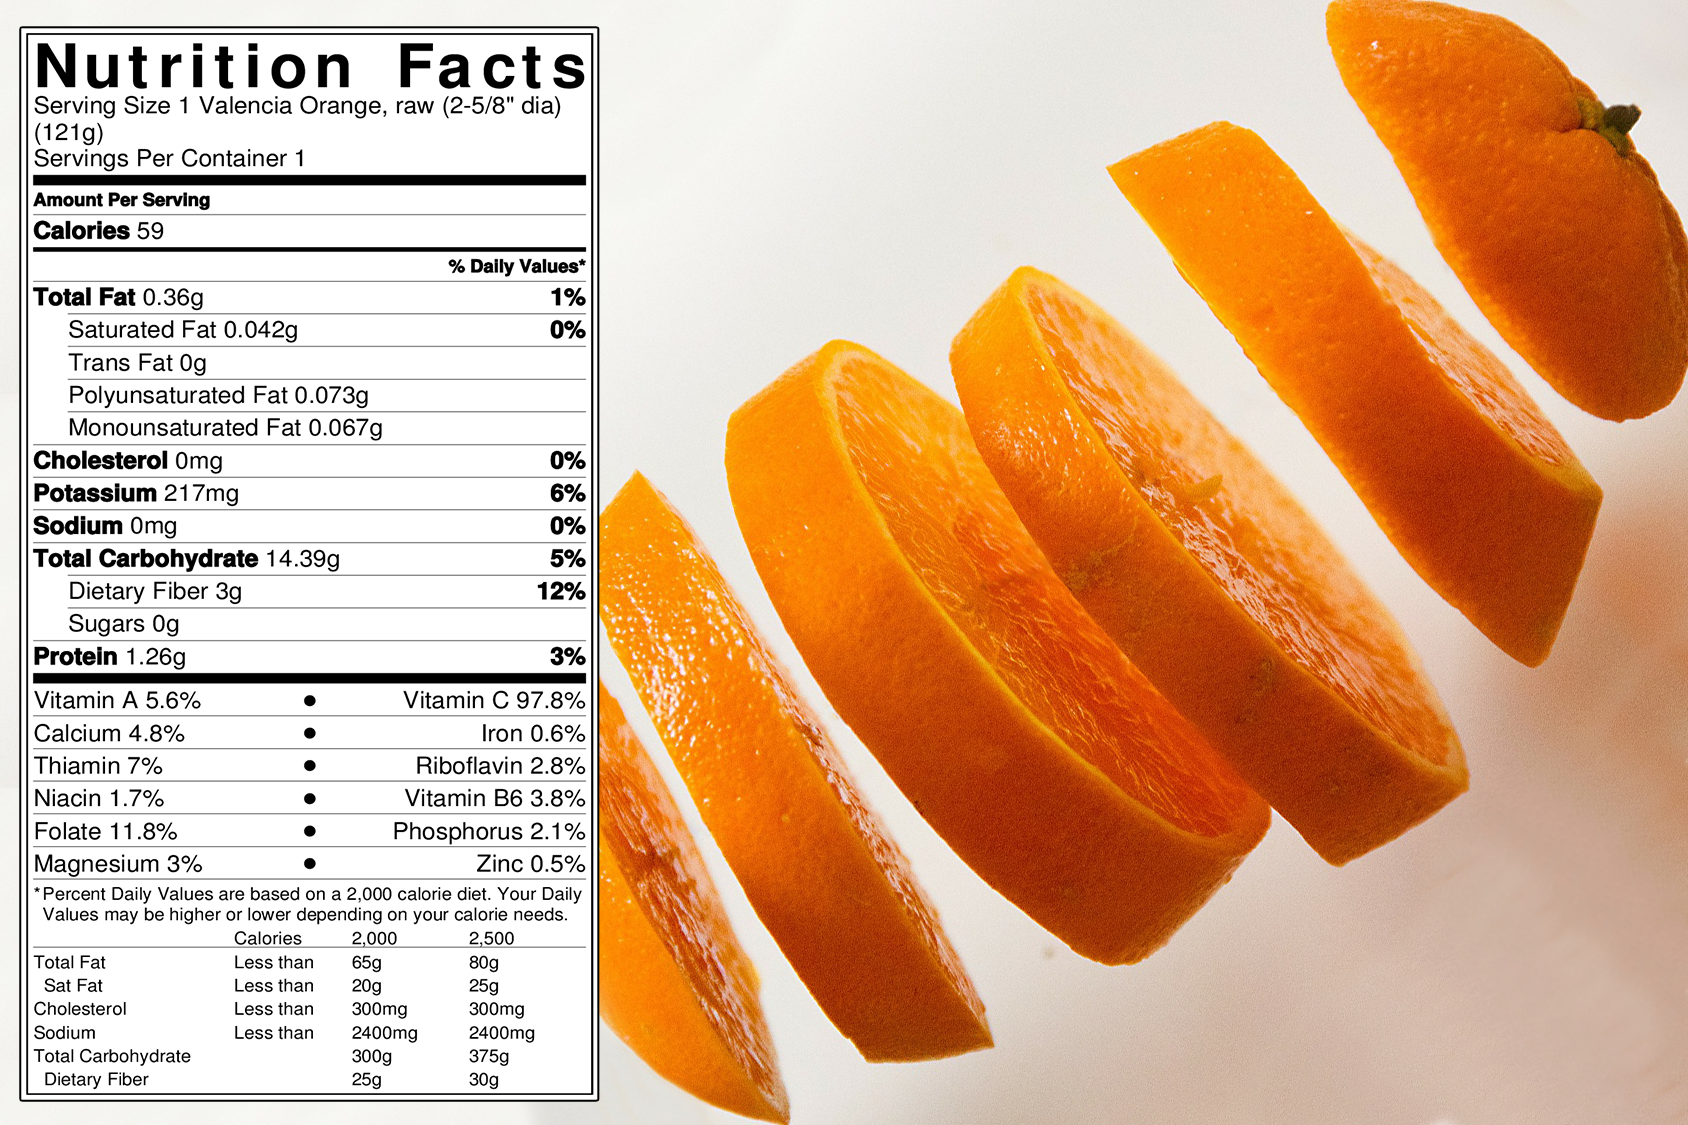 Oranges Fun Food Facts Foodnsport Home Of The 80 10 10 Diet By Dr Douglas Graham Vegan Raw Food Health And Fitness 80 10 10 Diet Videos By Dr Douglas Graham